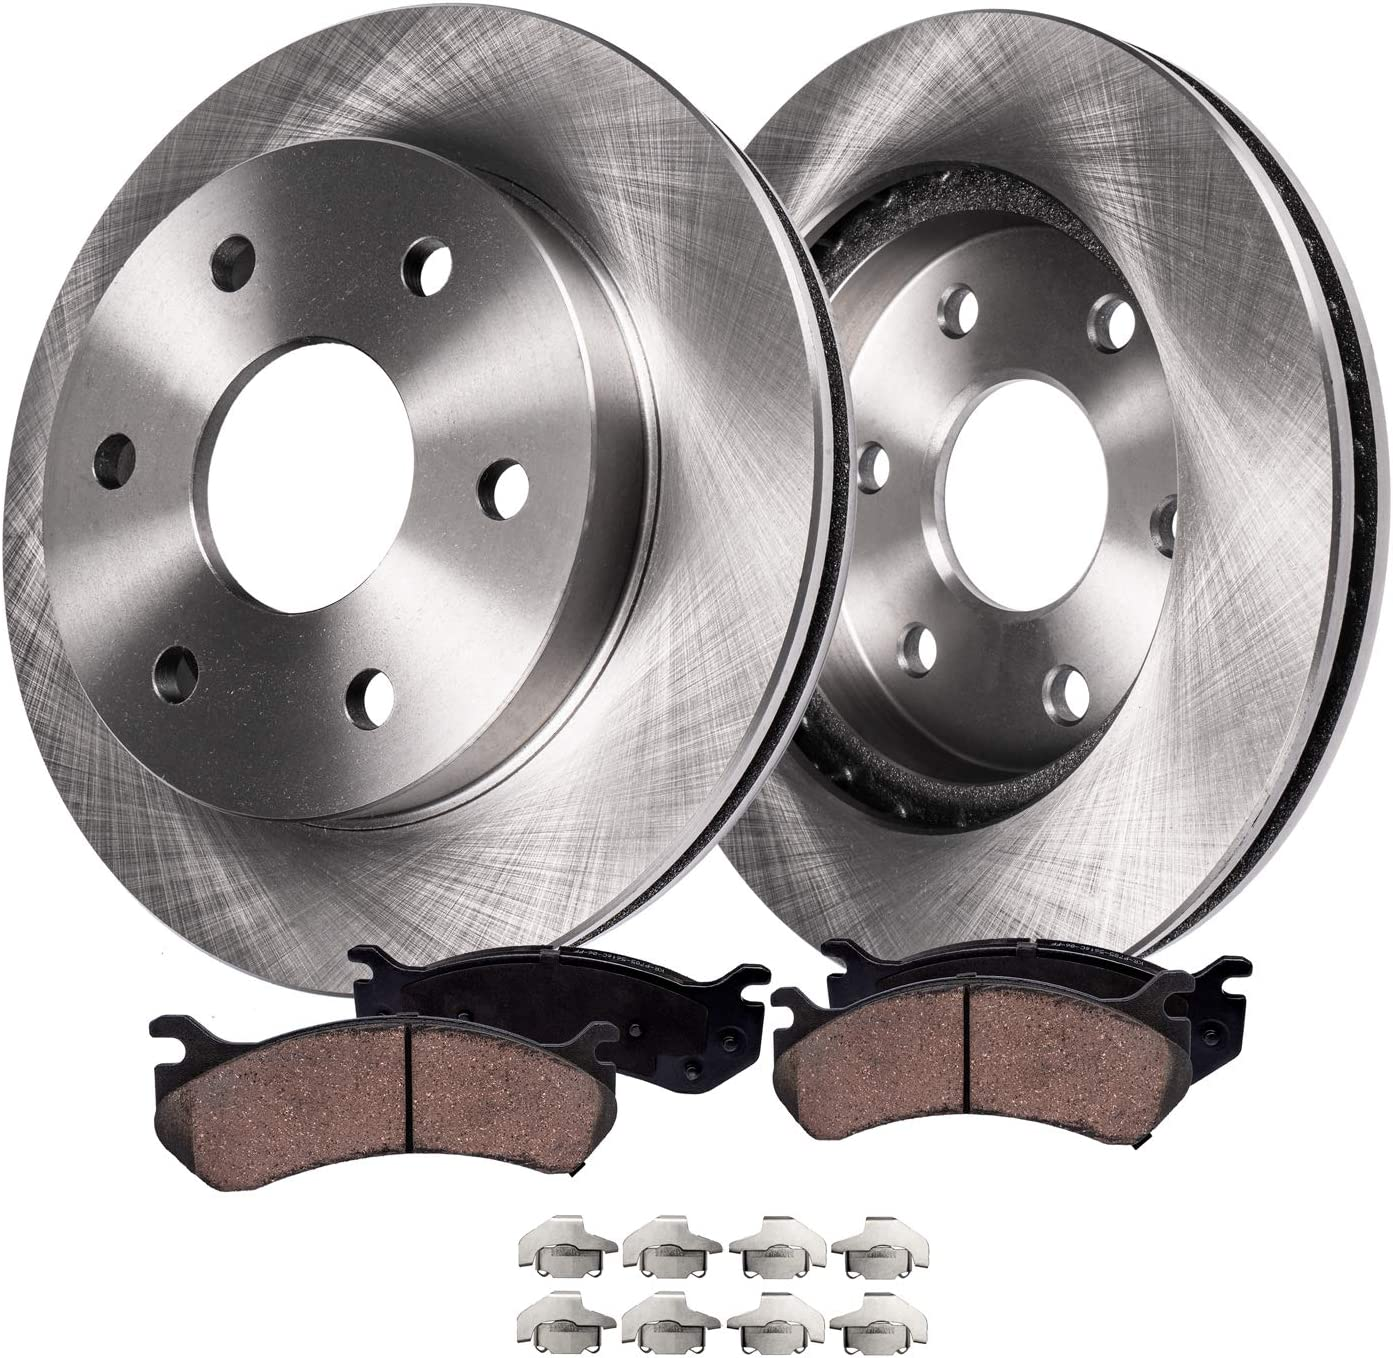 2007 2008 2009 2010 2011 Chevy Tahoe Rotors Metallic Pads R OE Replacement